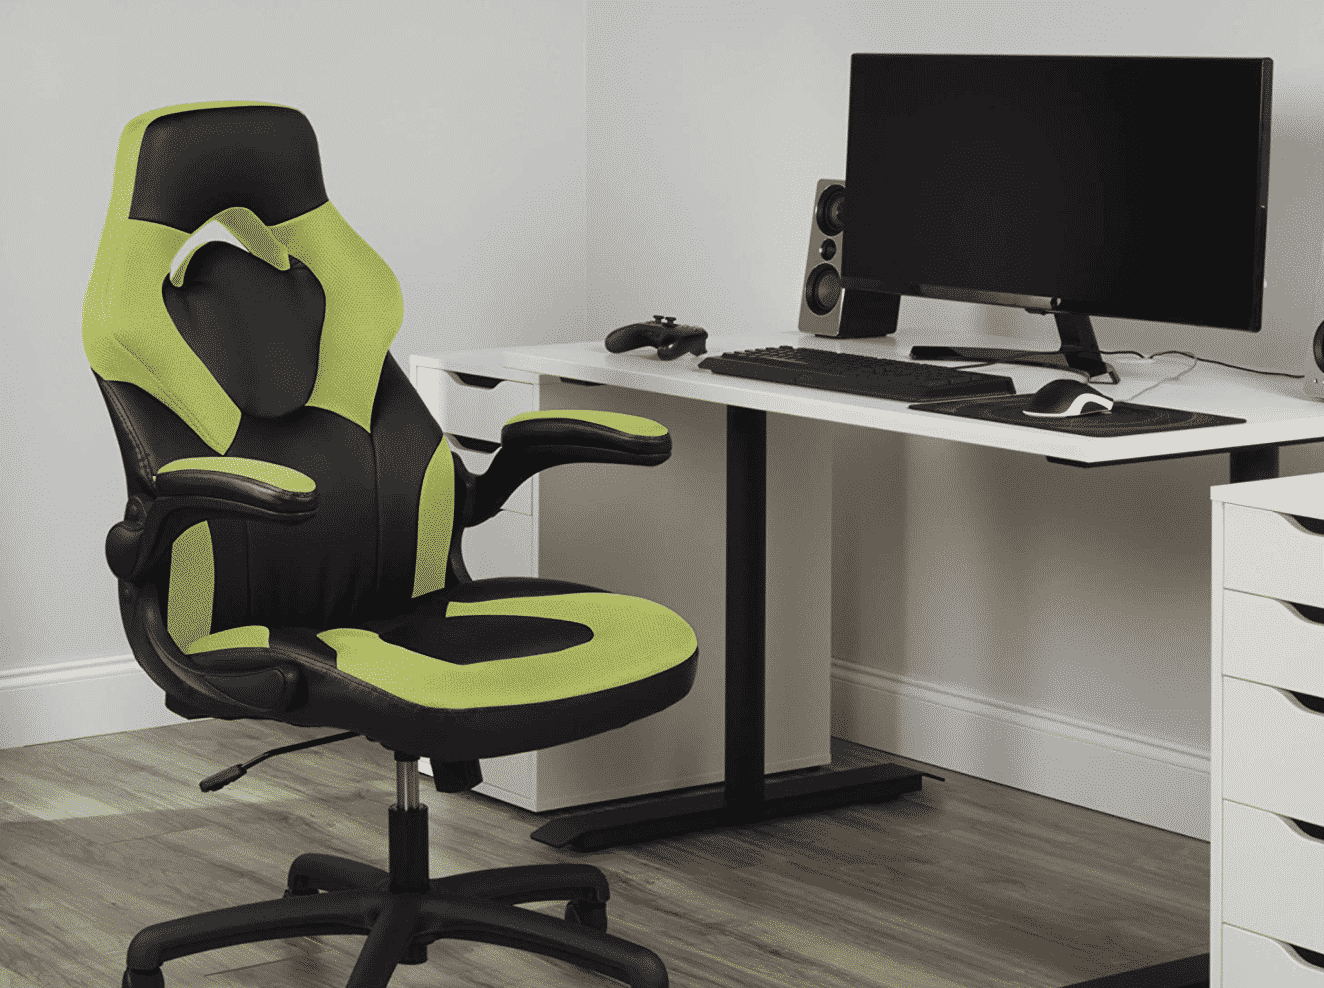 Play, Work and Relax in Style with the OFM Racing Style Leather Gaming Chair, Now $30 Off